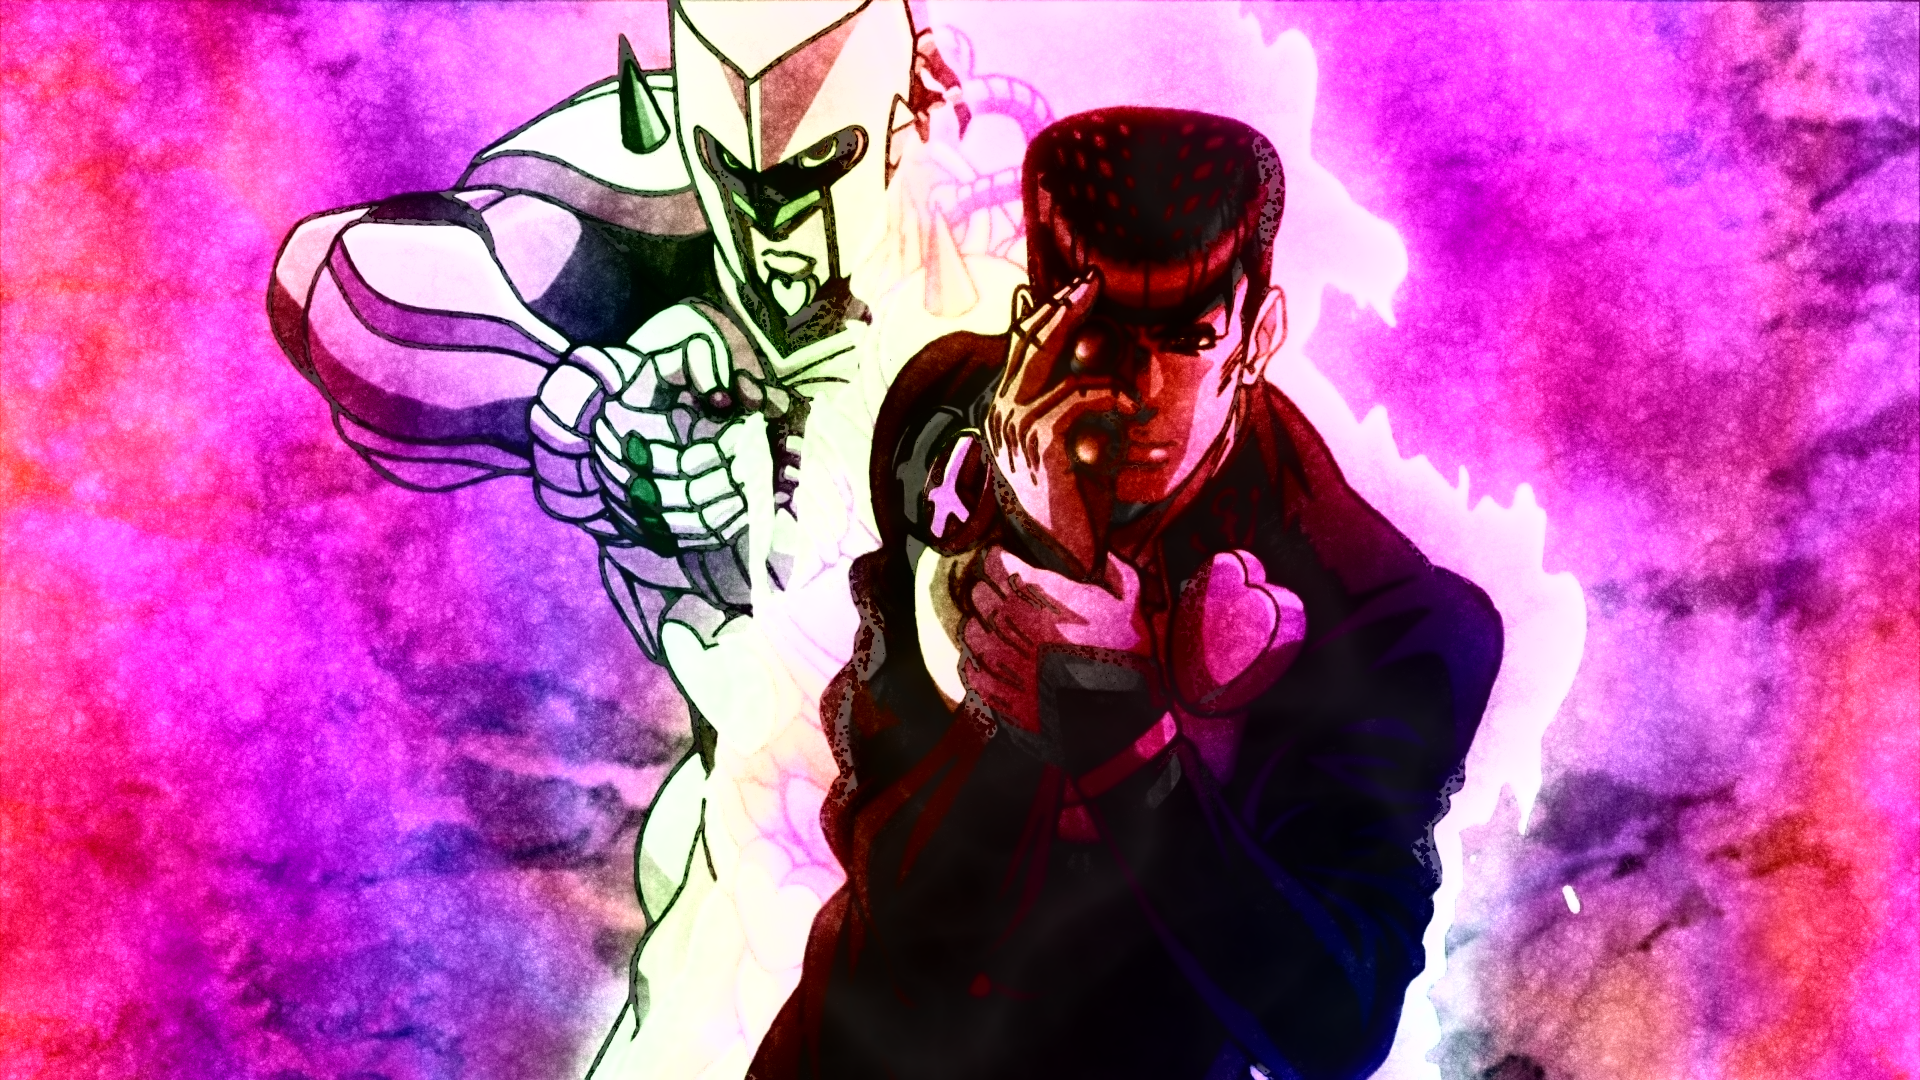 Jojos Bizarre Adventure Full HD Wallpaper And Background Image